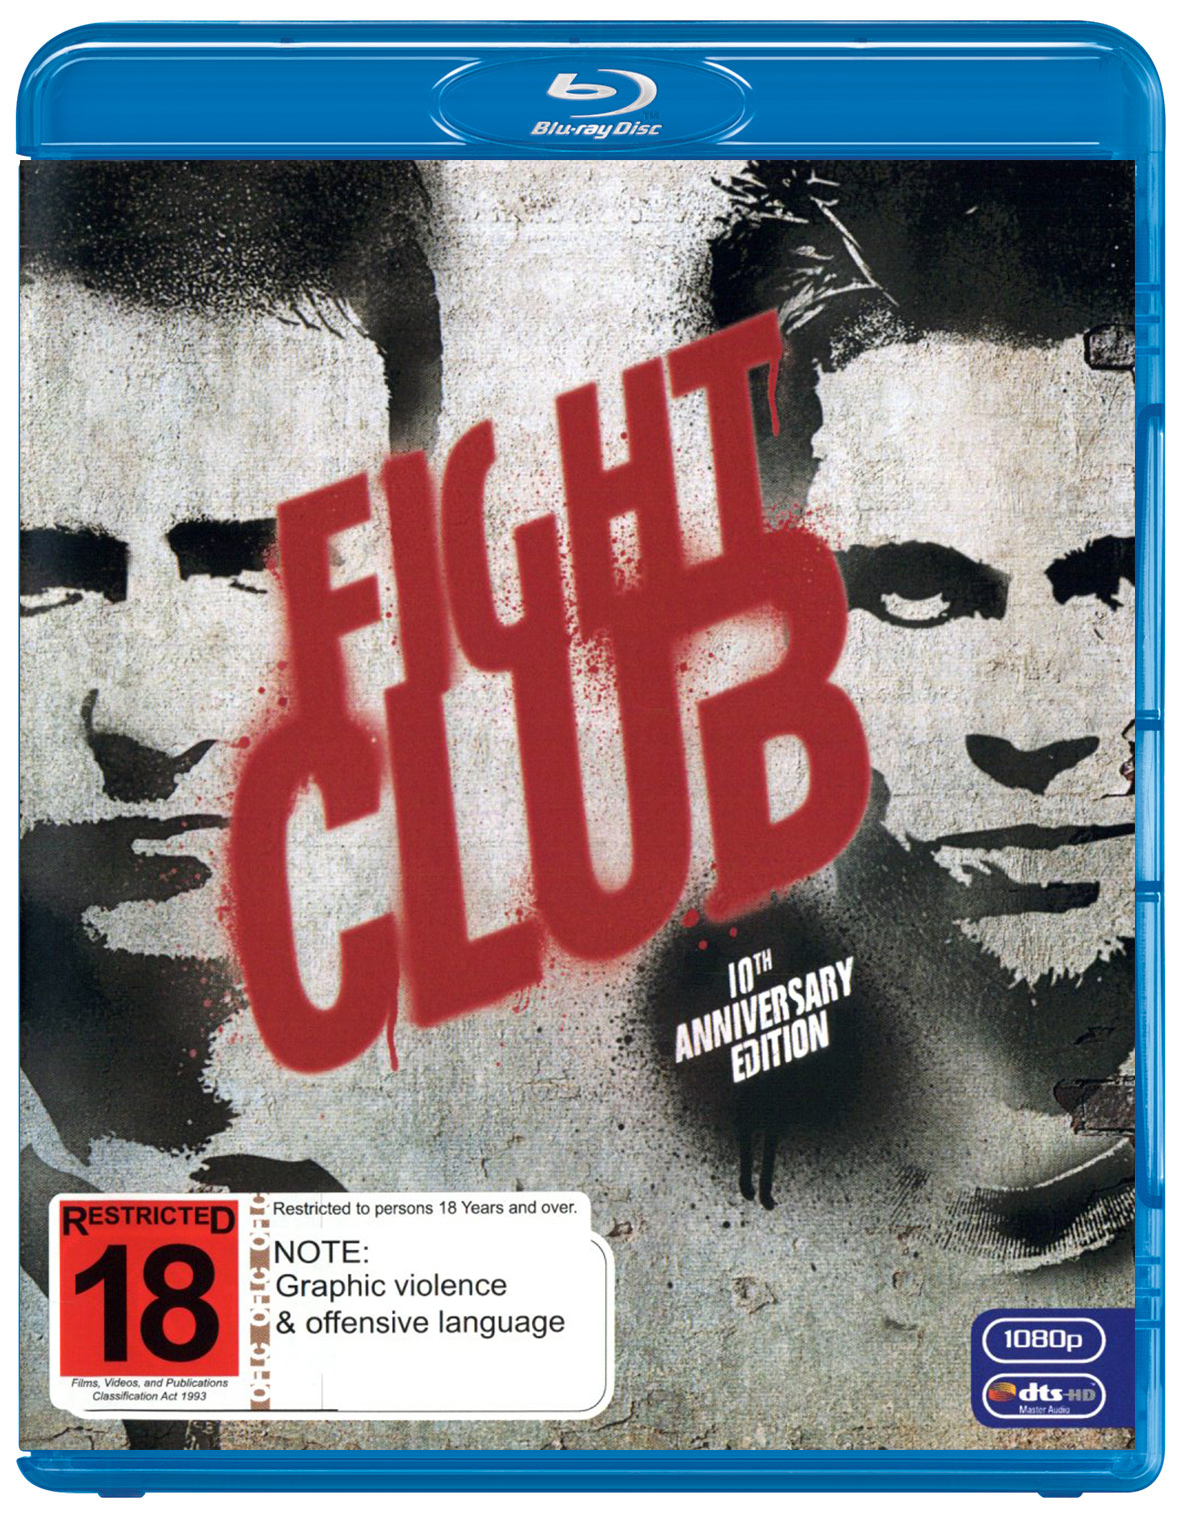 Fight Club - 10th Anniversary Edition on Blu-ray image